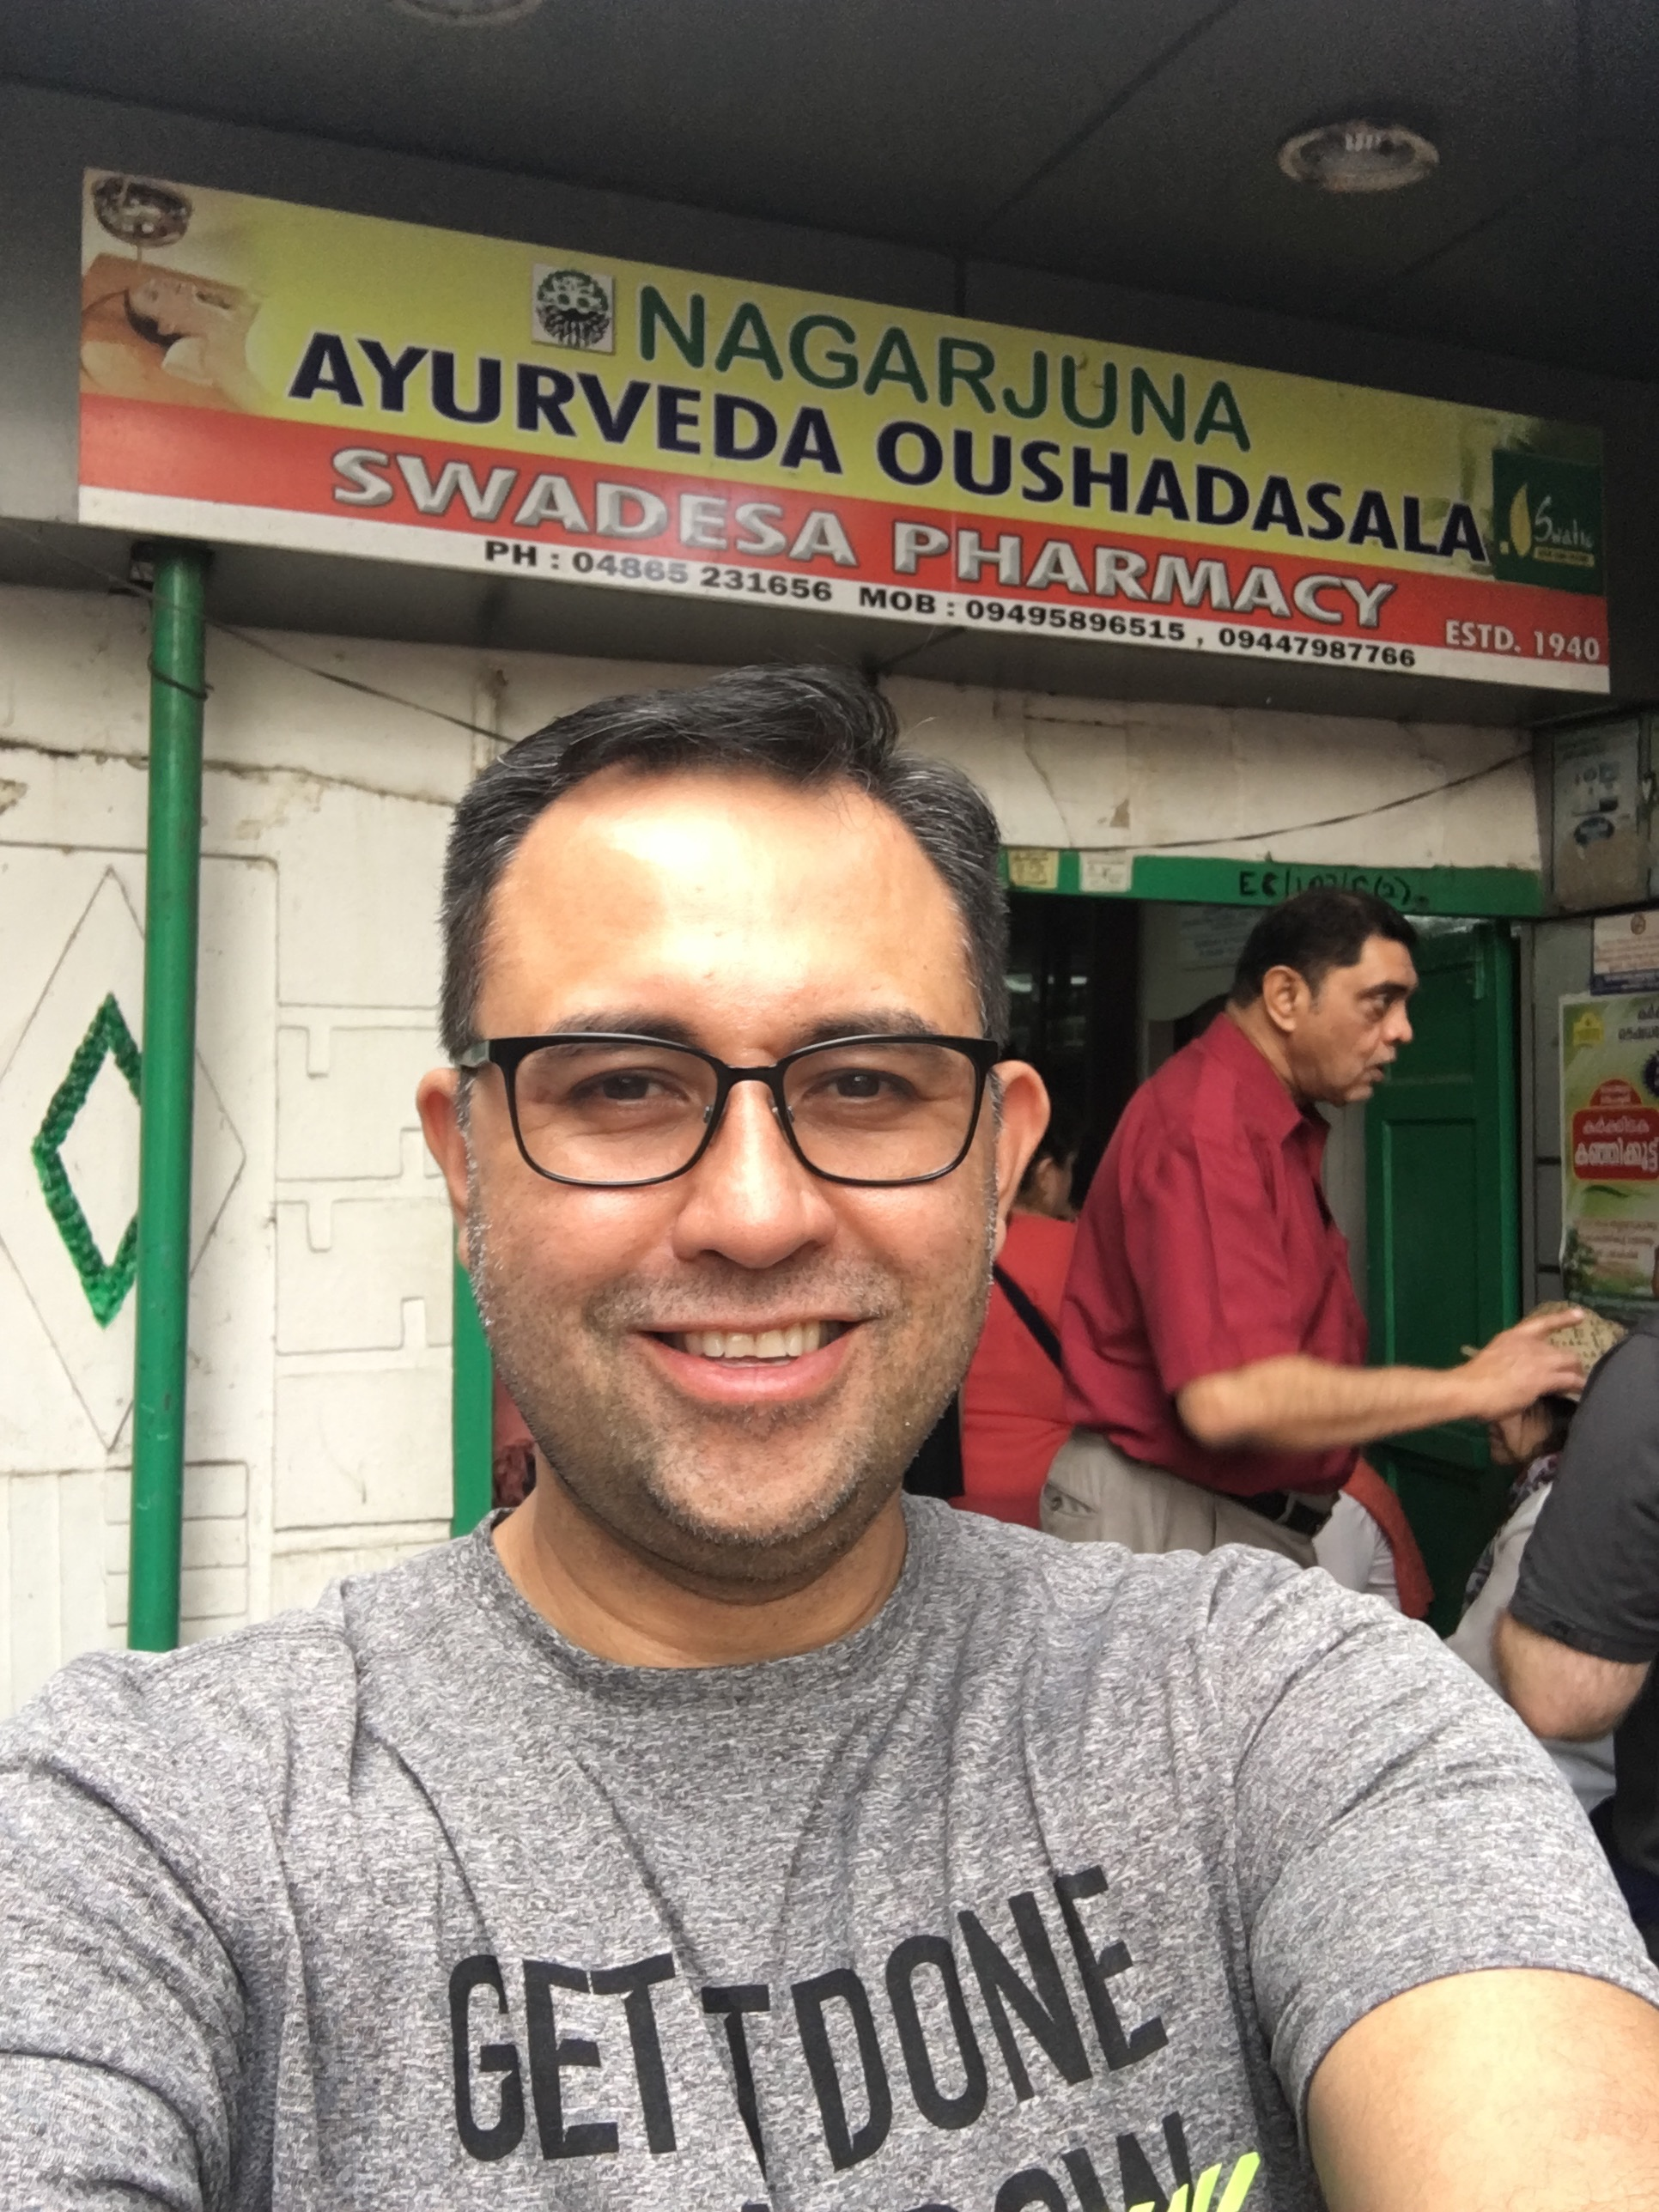 Visiting an Ayurvedic Pharmacy